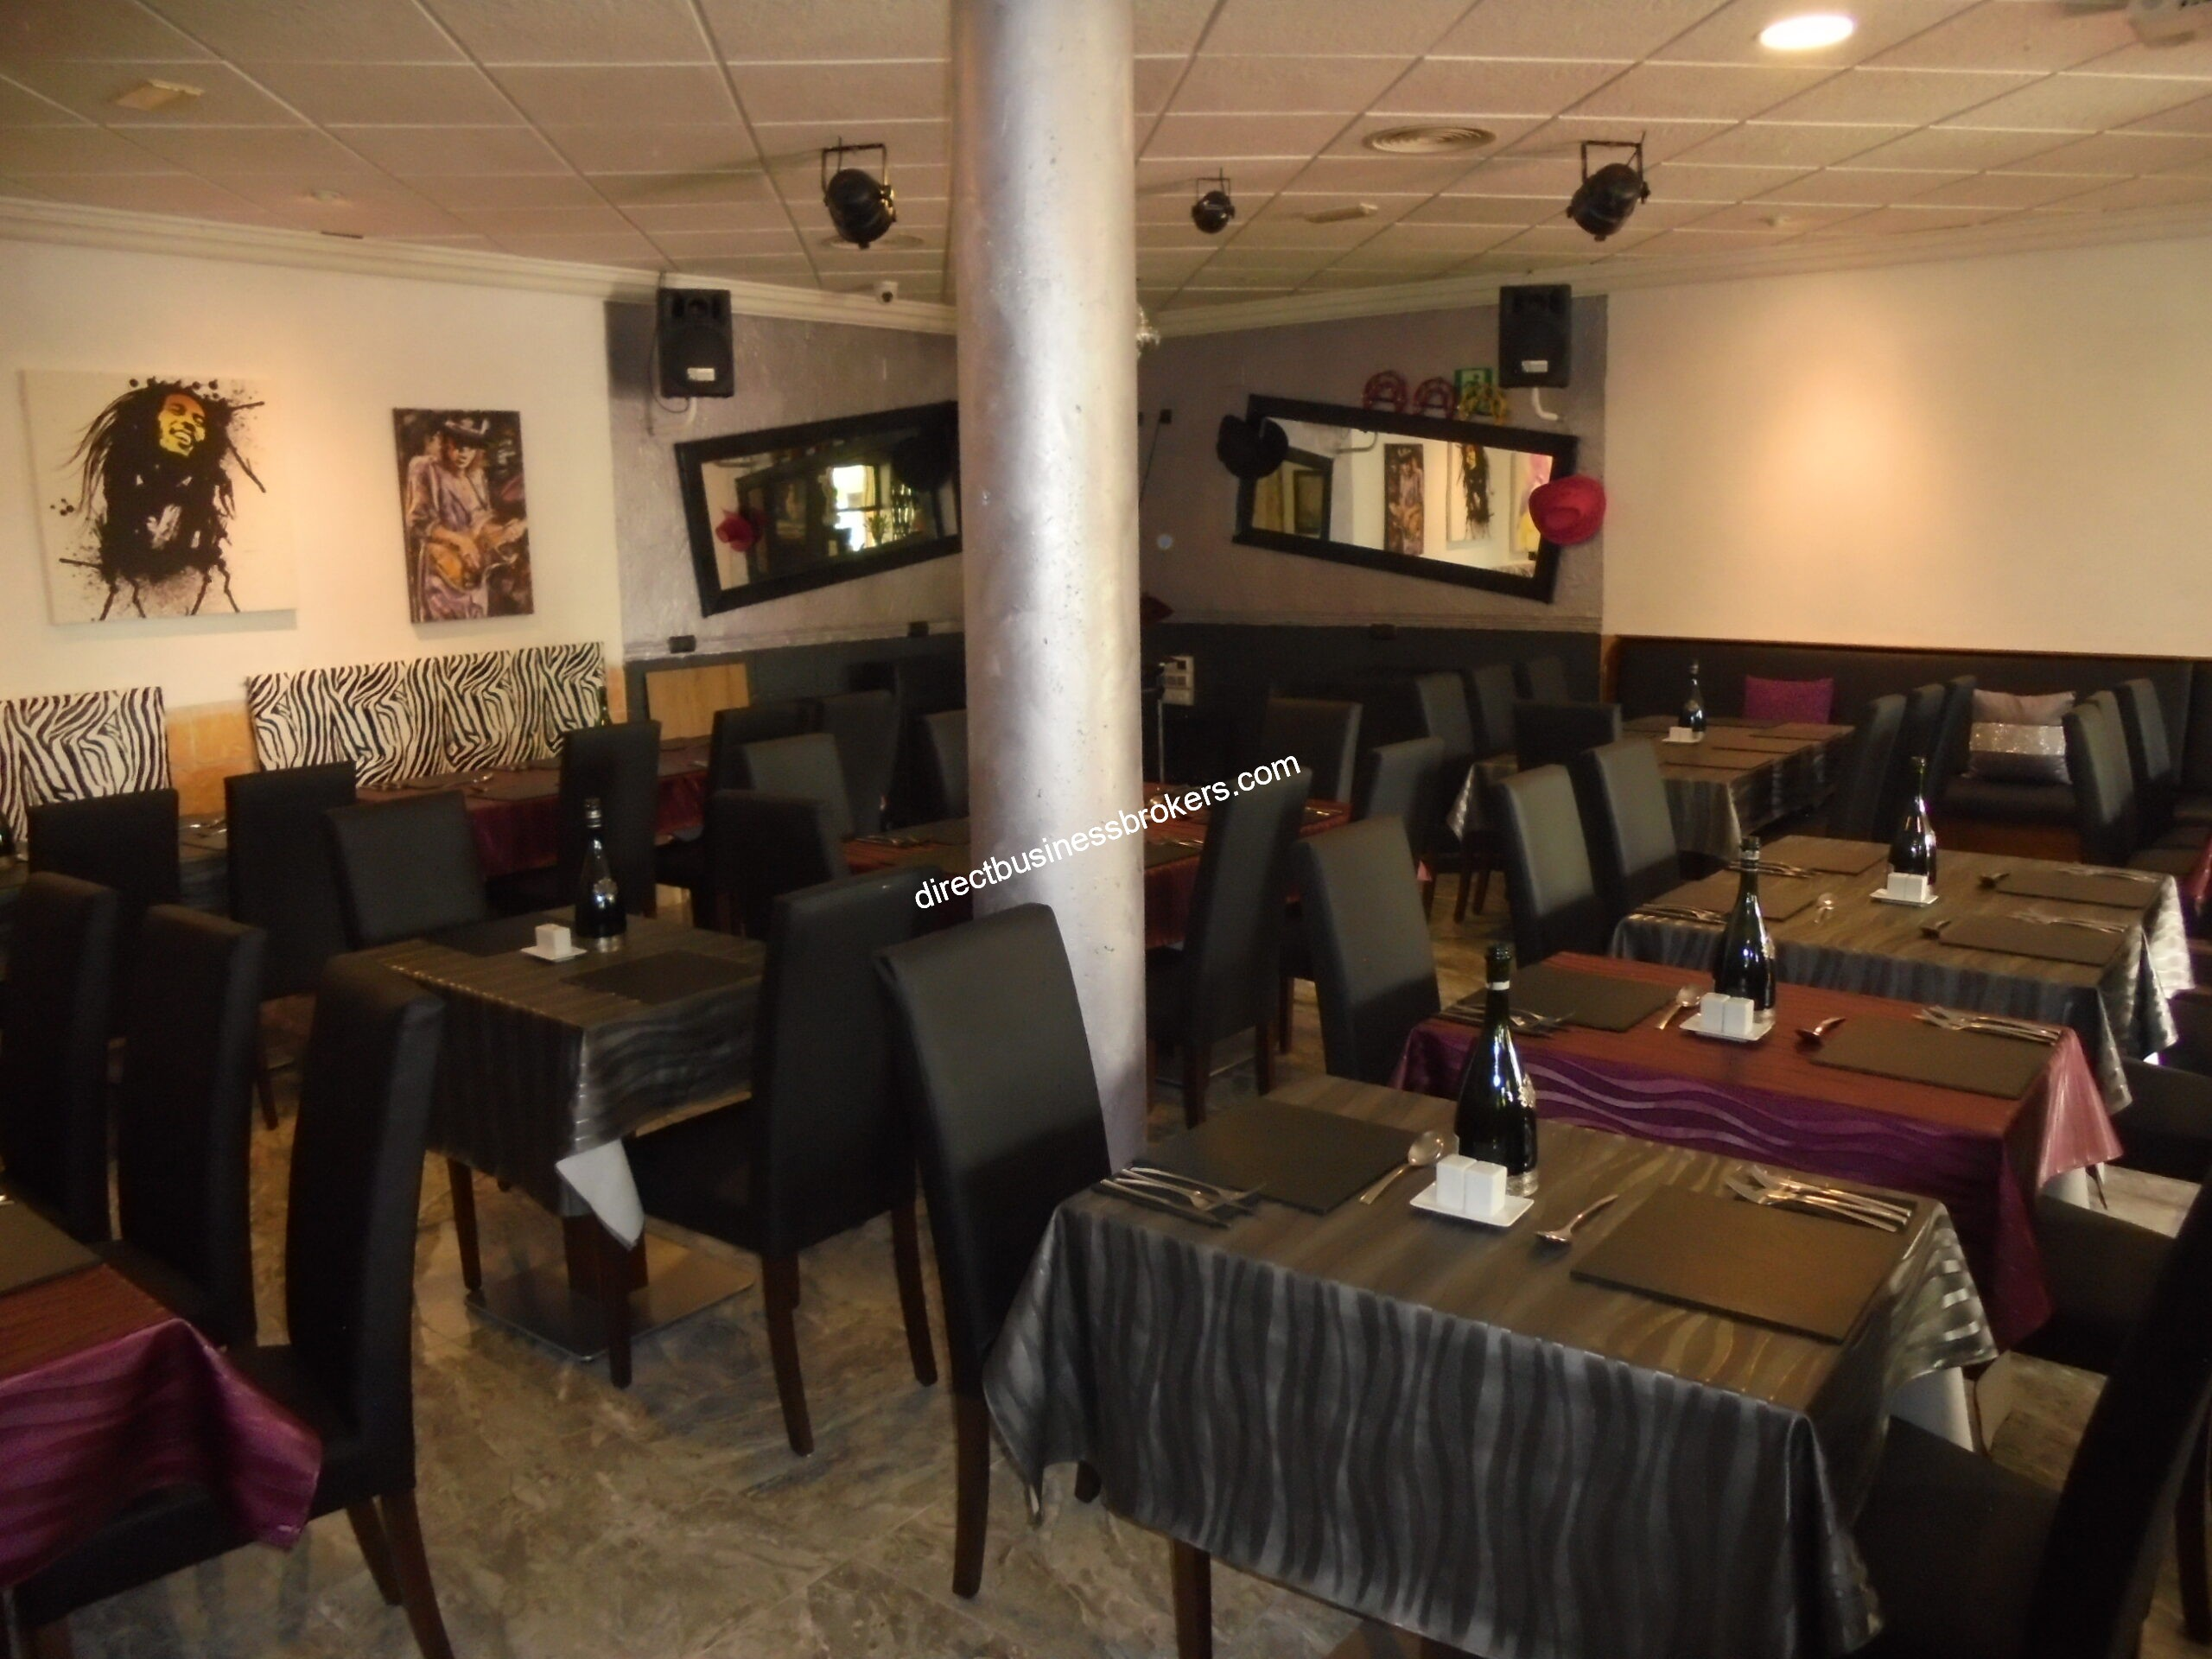 Very Busy Restaurant and Music Venue (1284)